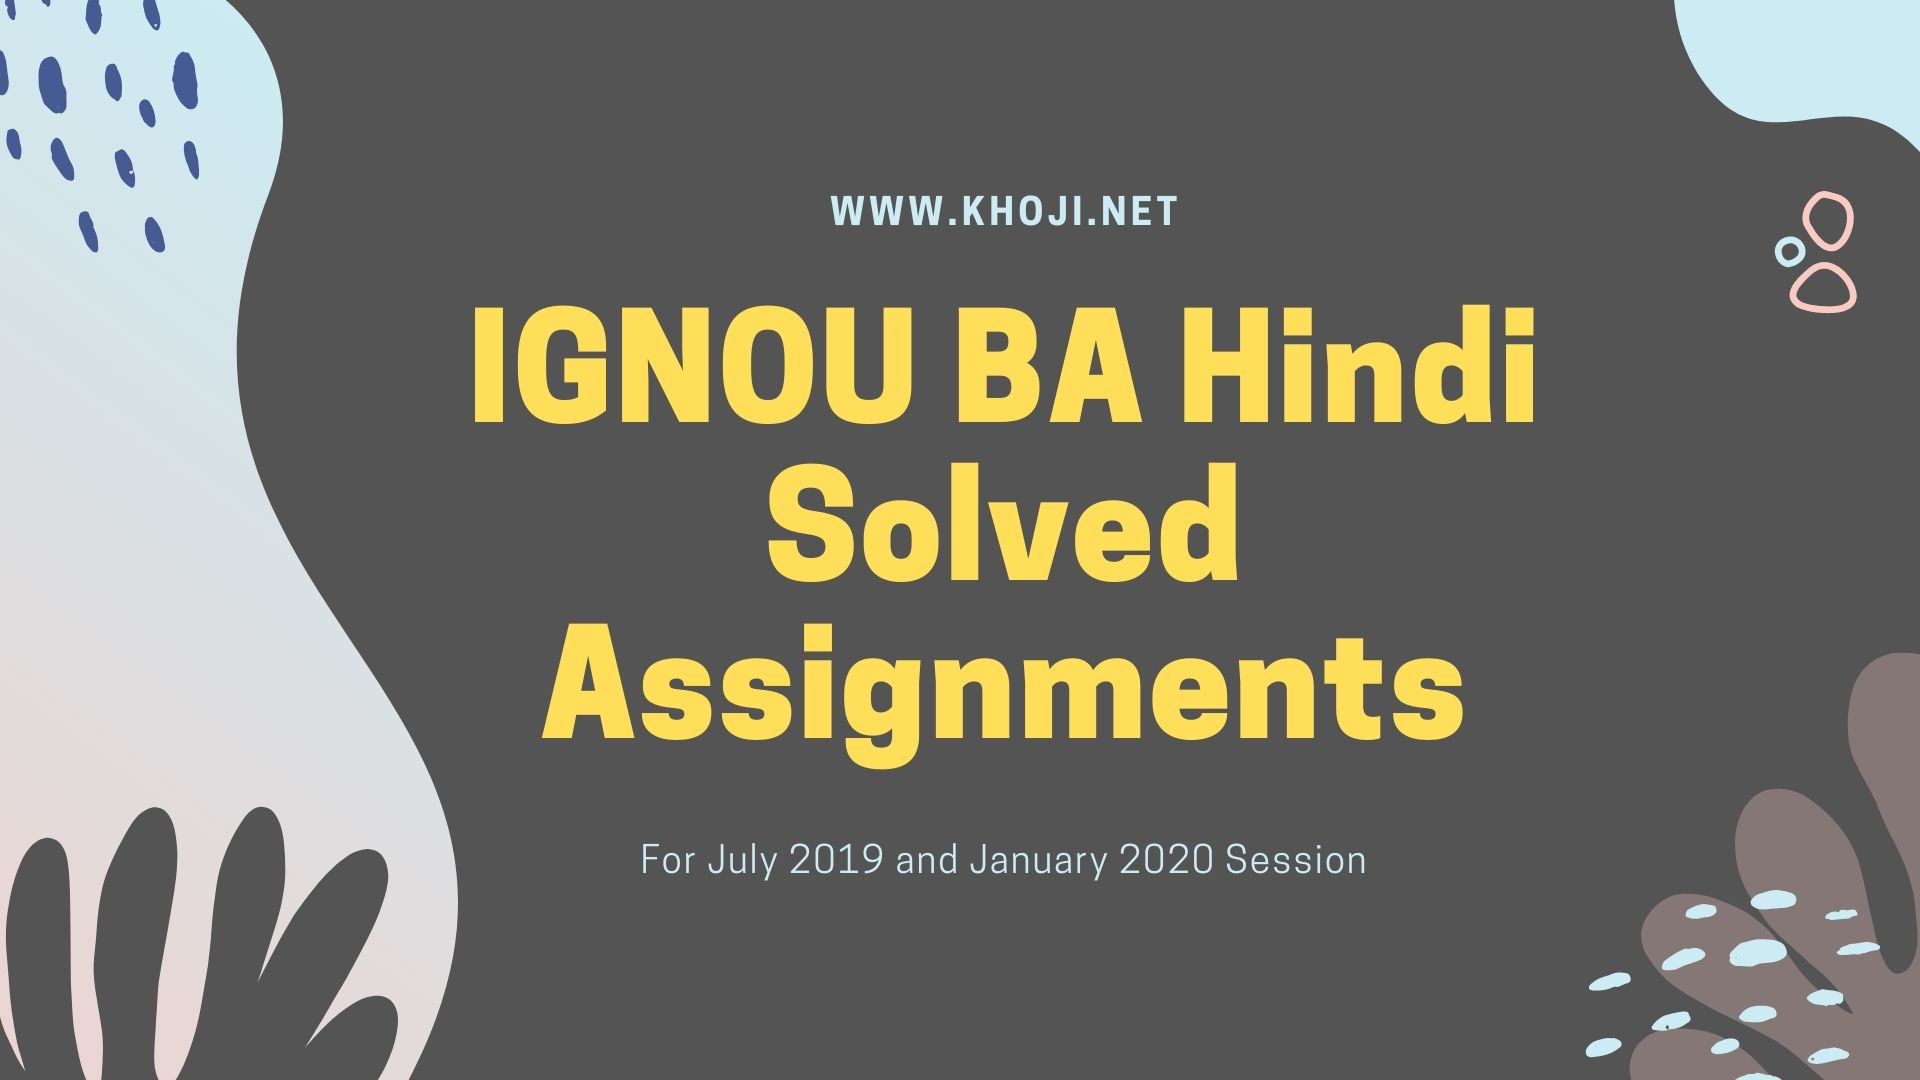 IGNOU BA Hindi Solved Assignments 2019-2020